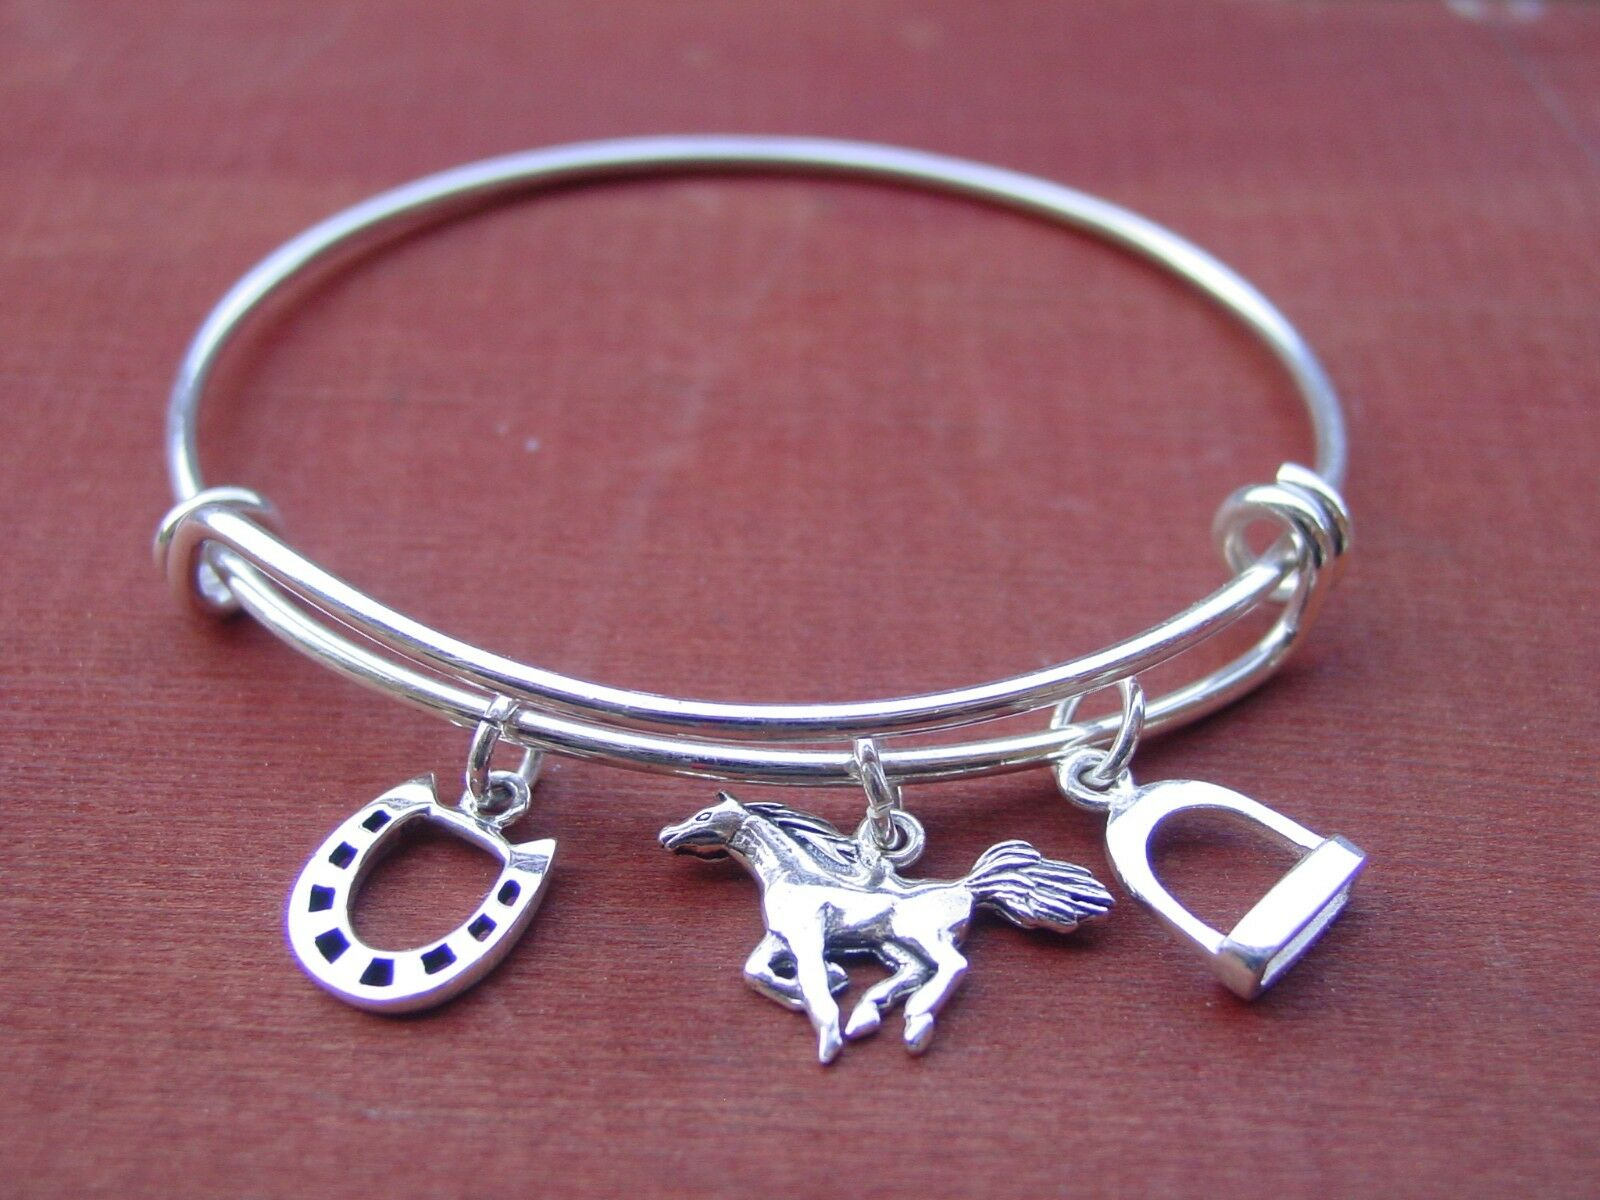 Equestrian Charms Adjustable Bangle, Stirrup, Horseshoe and Mustang Horse Bangle